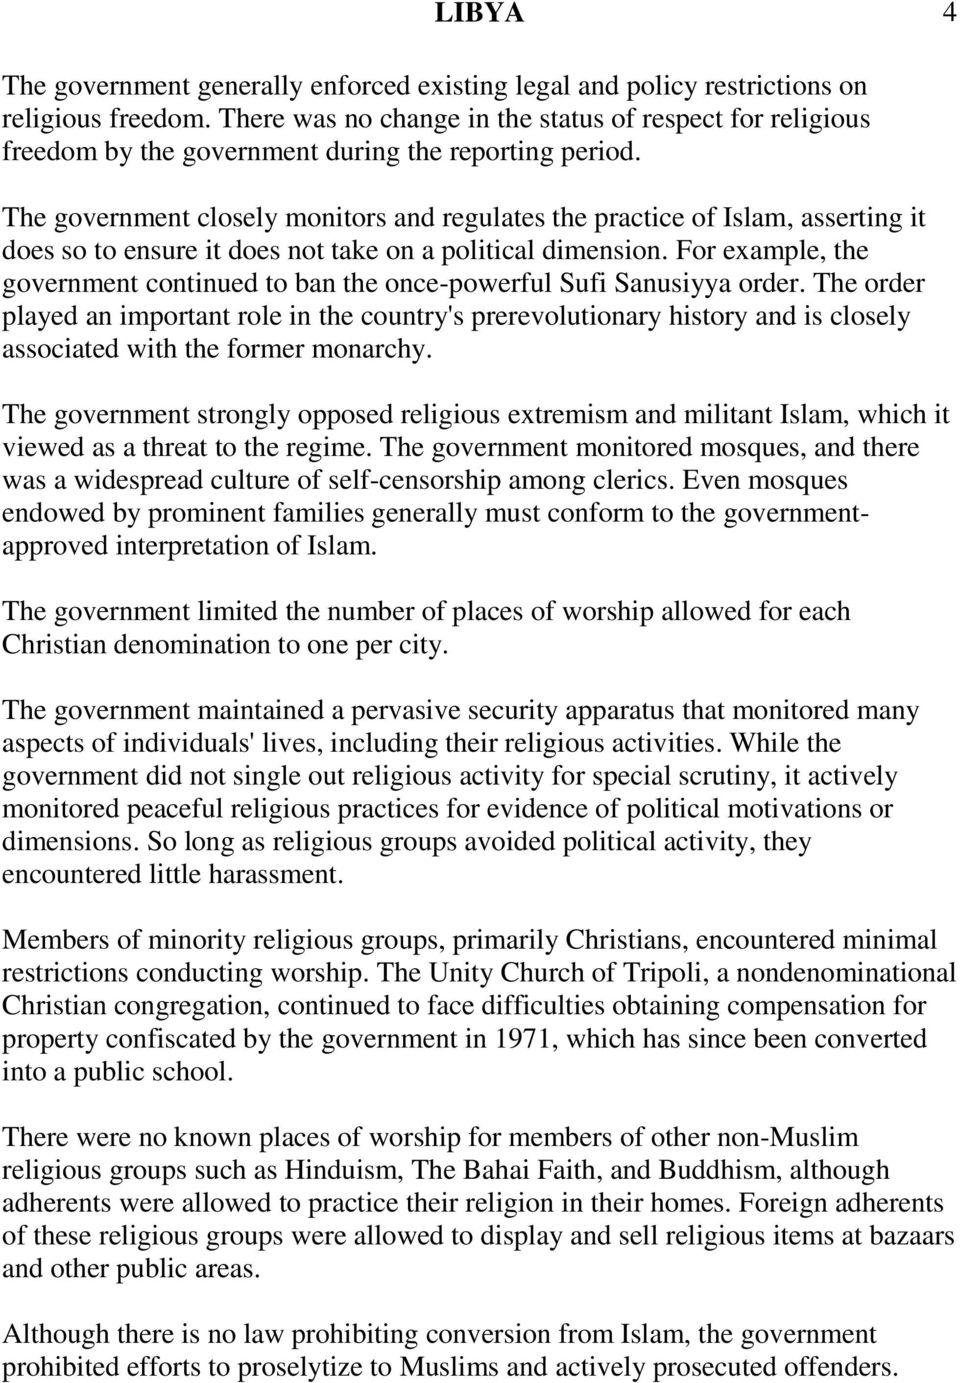 The government closely monitors and regulates the practice of Islam, asserting it does so to ensure it does not take on a political dimension.